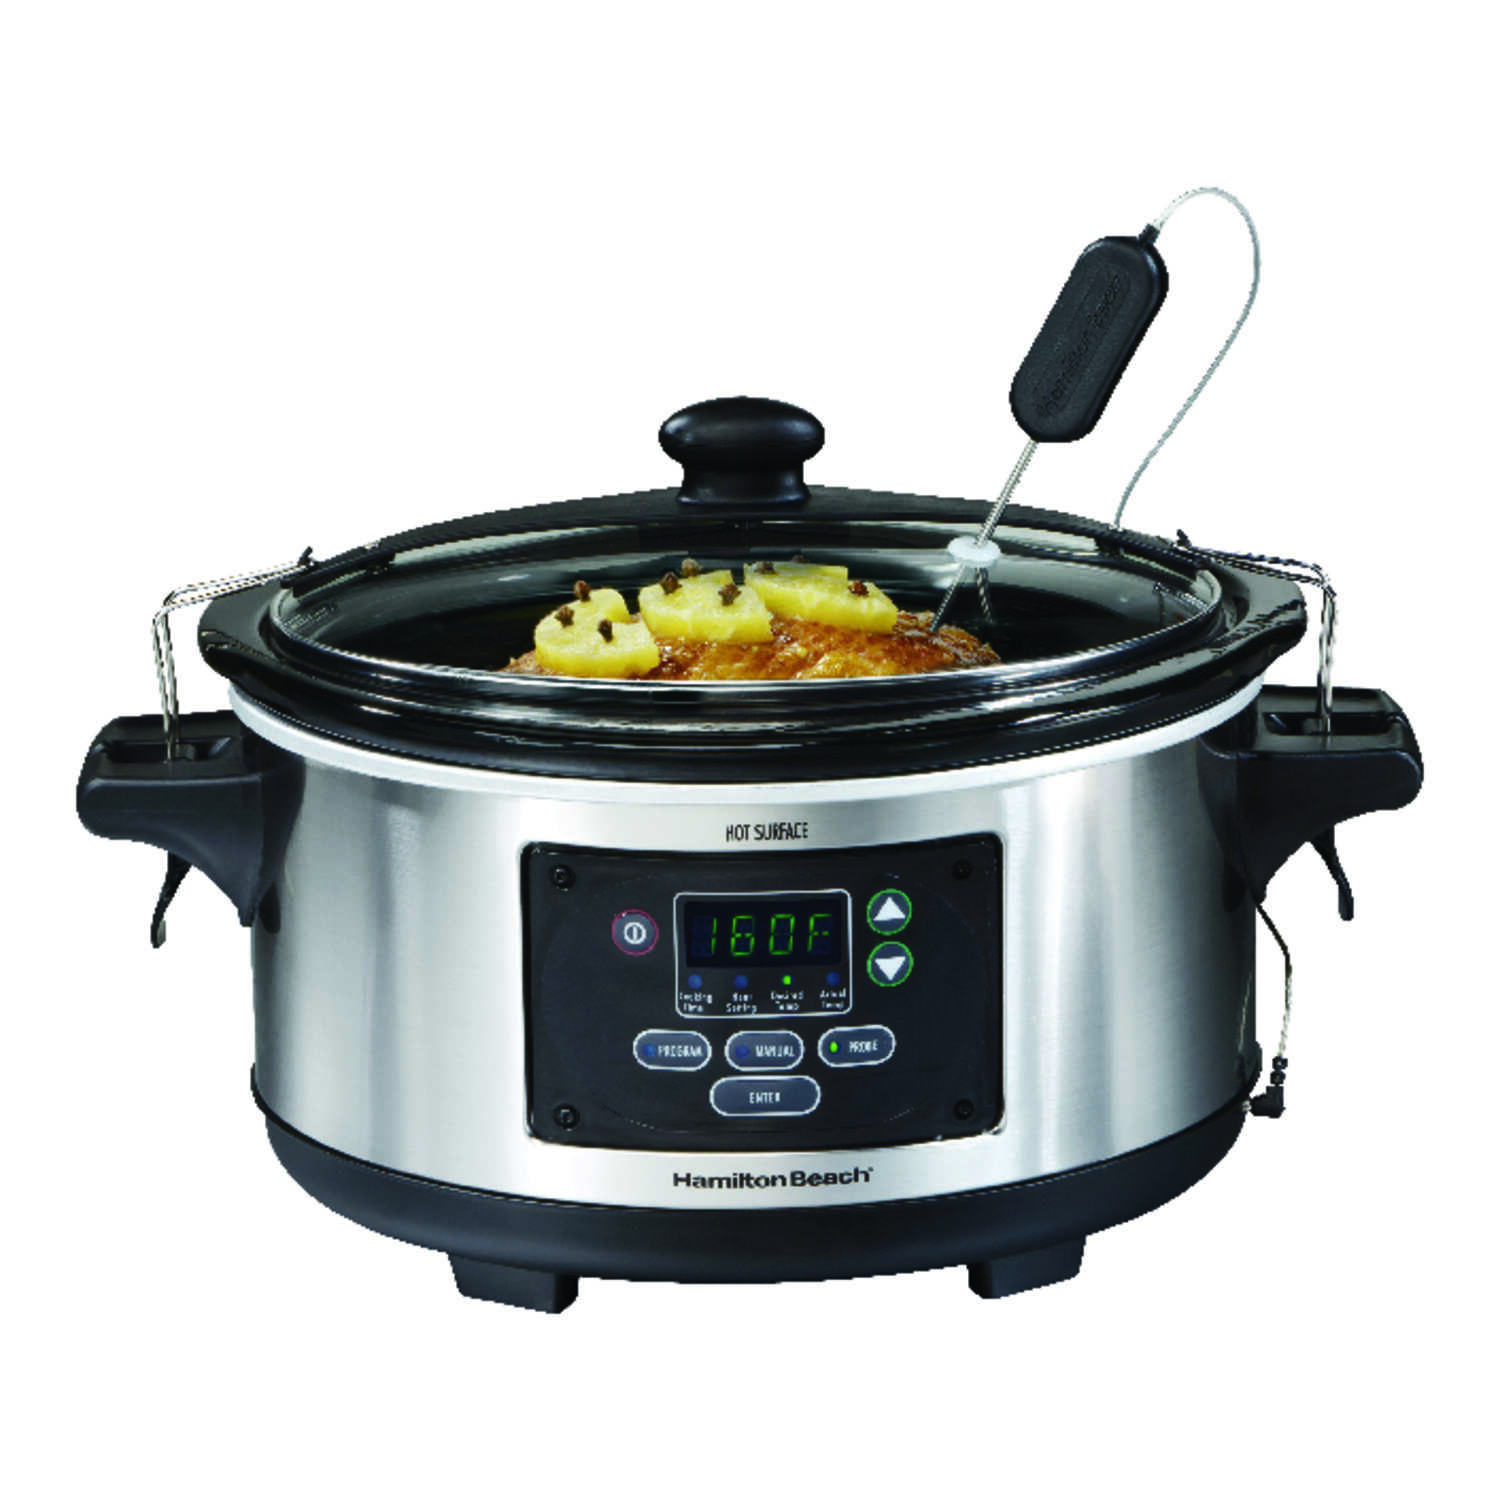 Hamilton Beach  6 qt. Stainless Steel  Programmable Silver  Slow Cooker